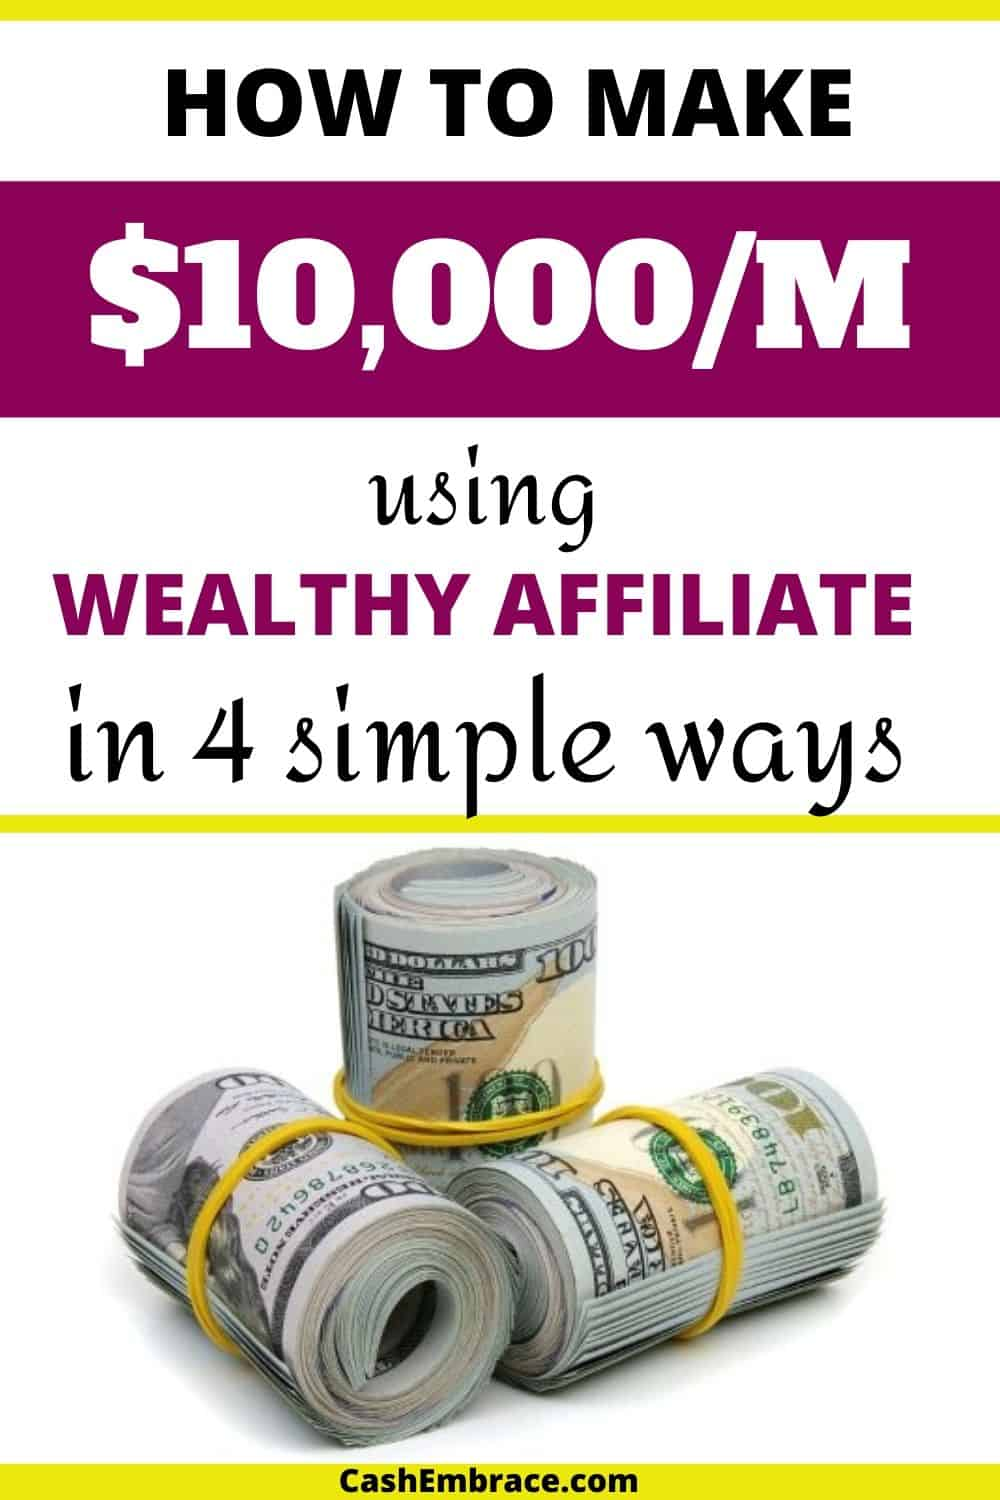 how to make money with wealthy affiliate earn $10,000 per month with affiliate marketing